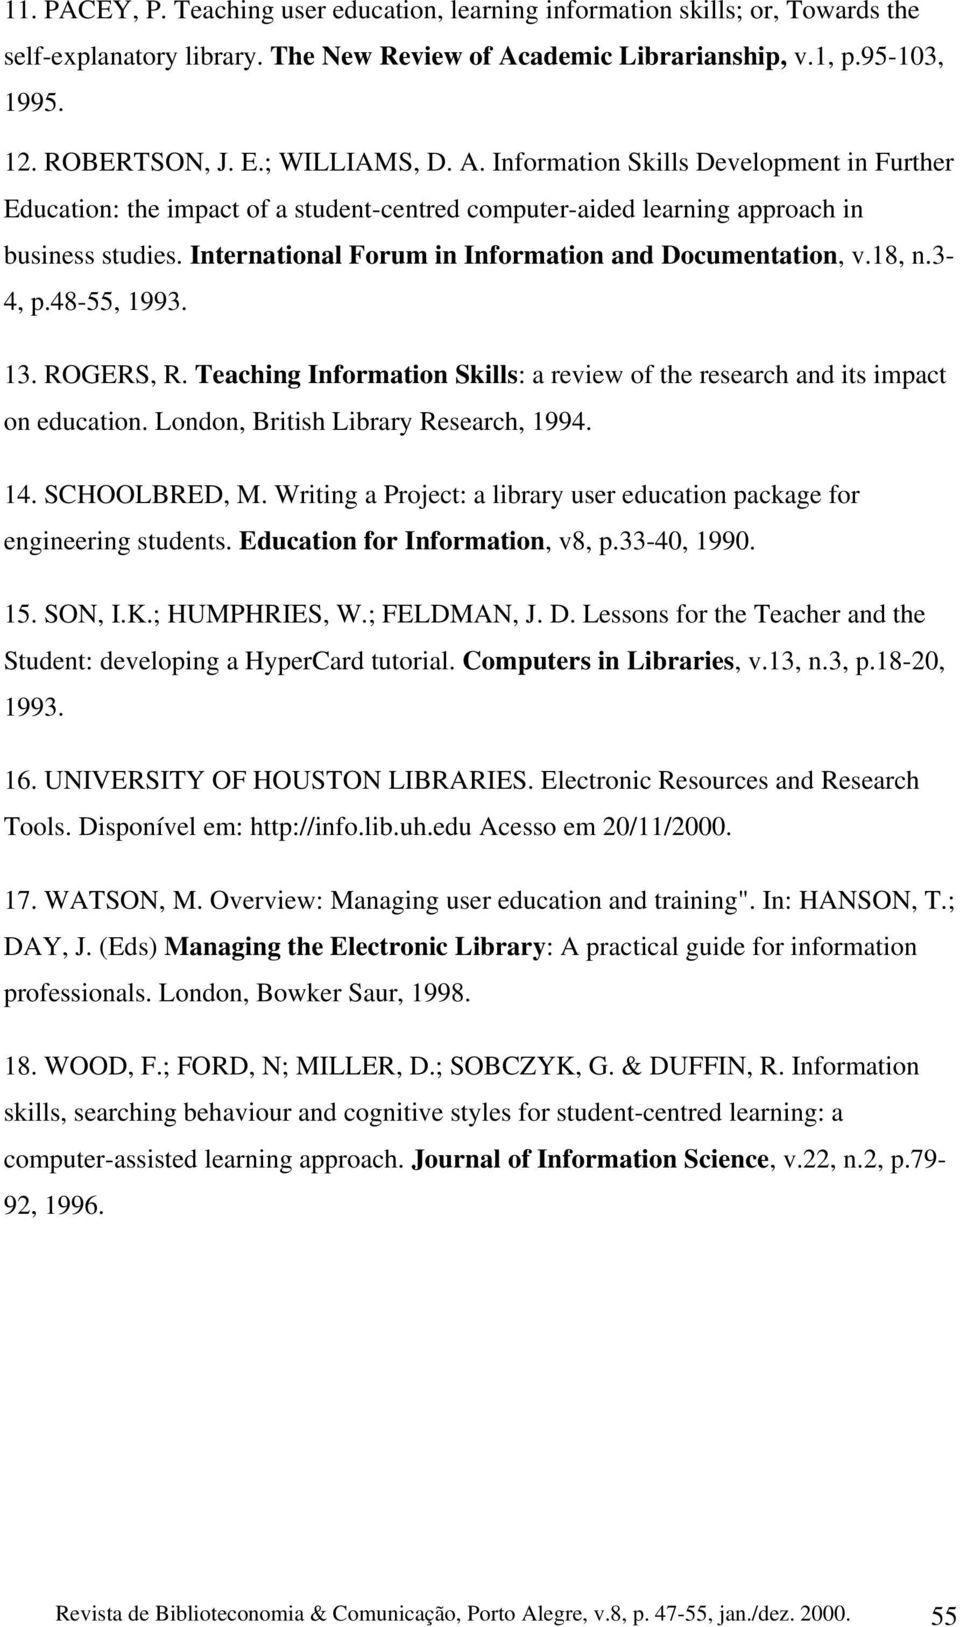 International Forum in Information and Documentation, v.18, n.3-4, p.48-55, 1993. 13. ROGERS, R. Teaching Information Skills: a review of the research and its impact on education.